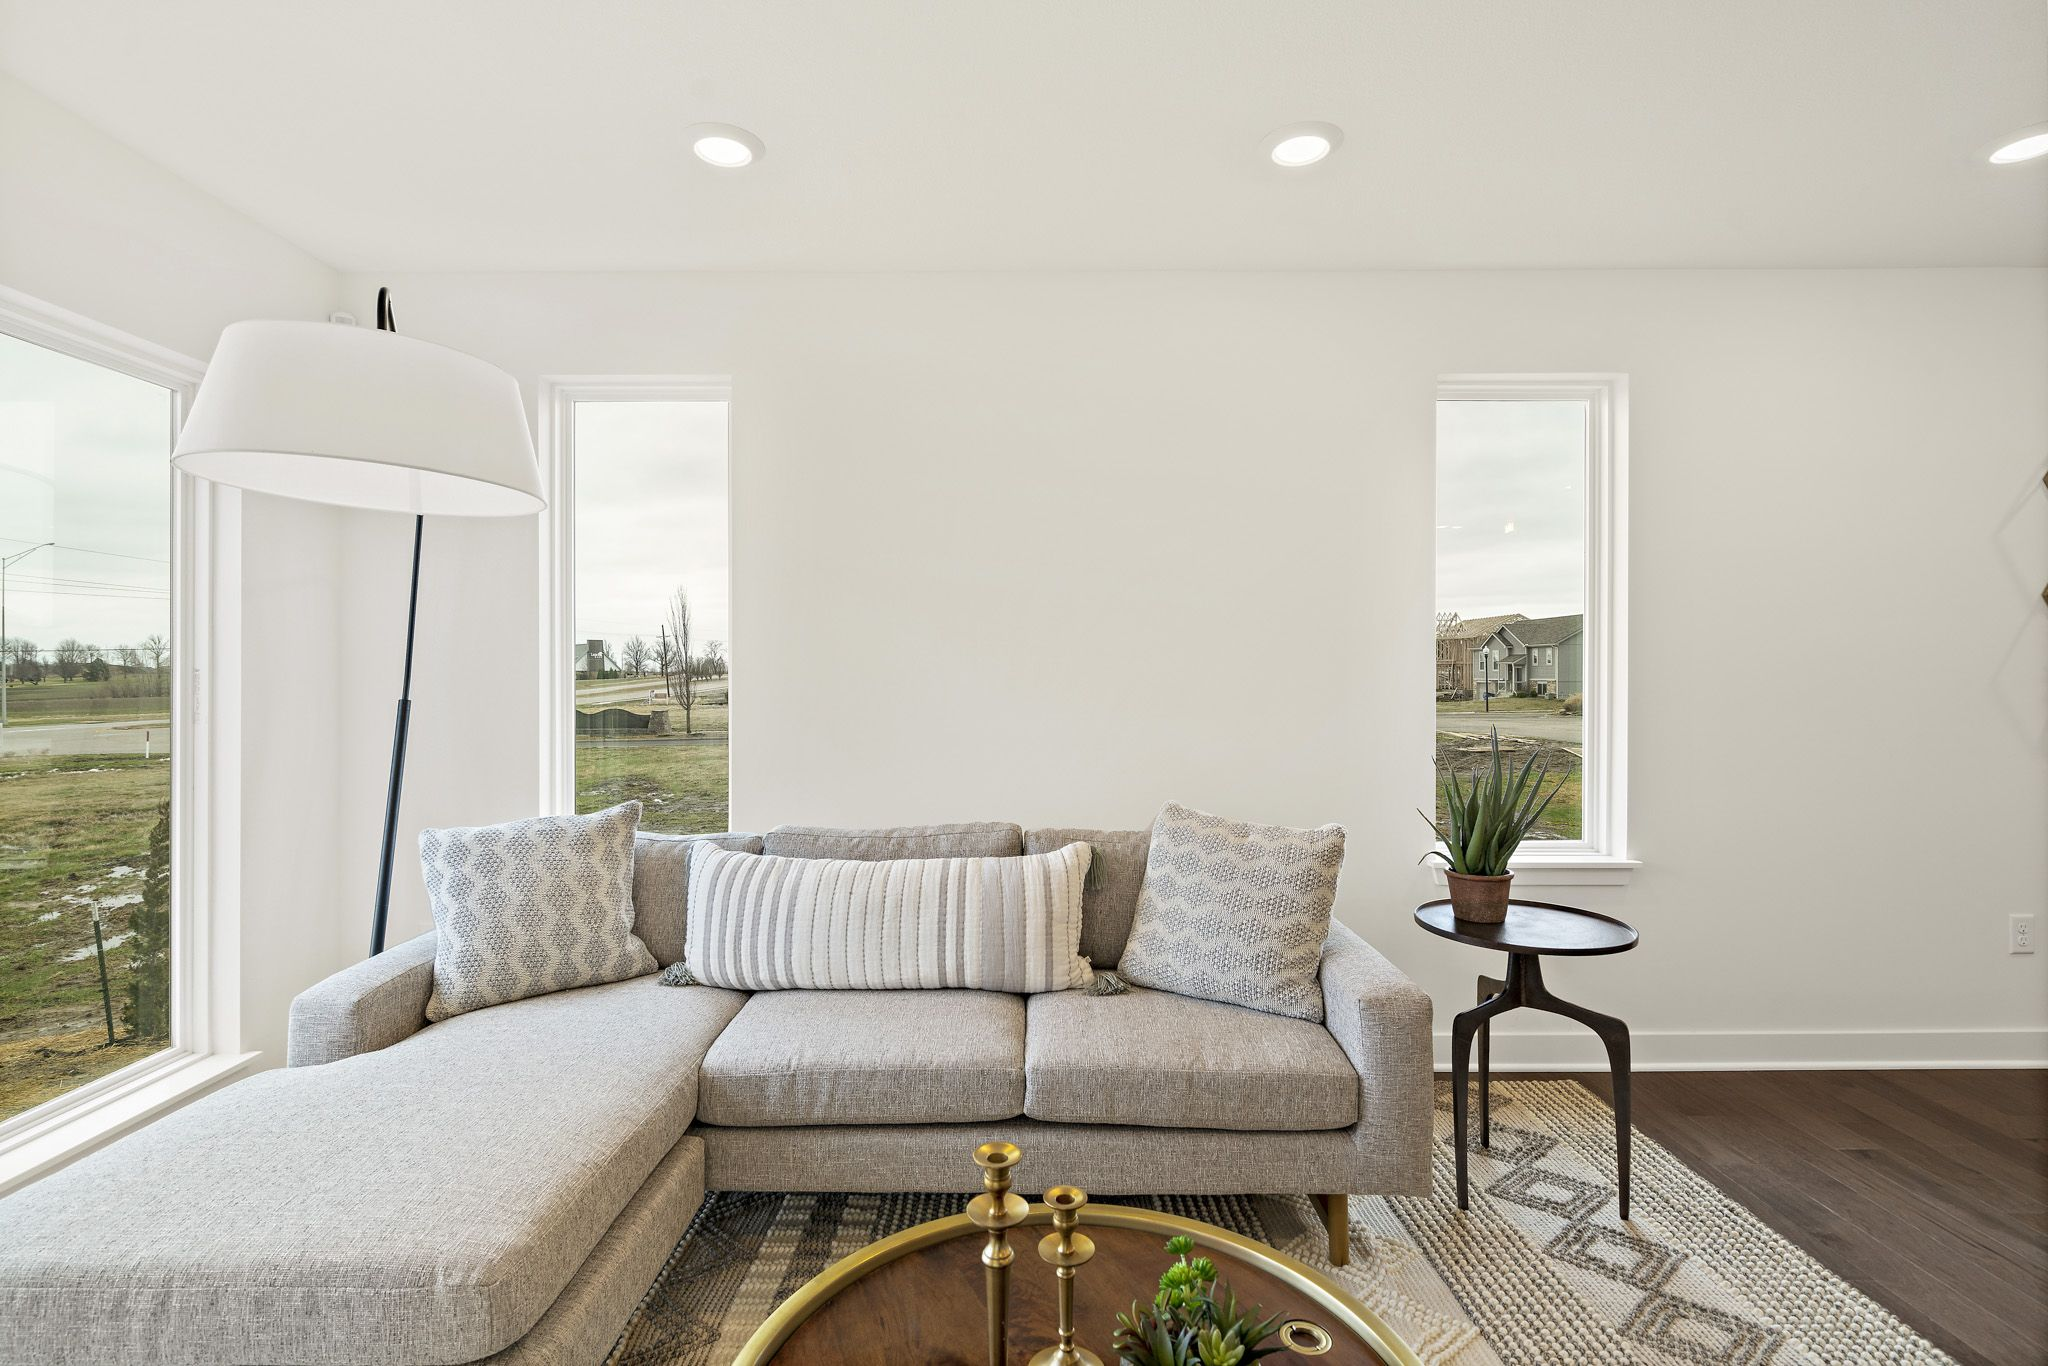 Living Area featured in the sapphire - contemporary By clover & hive in Kansas City, MO